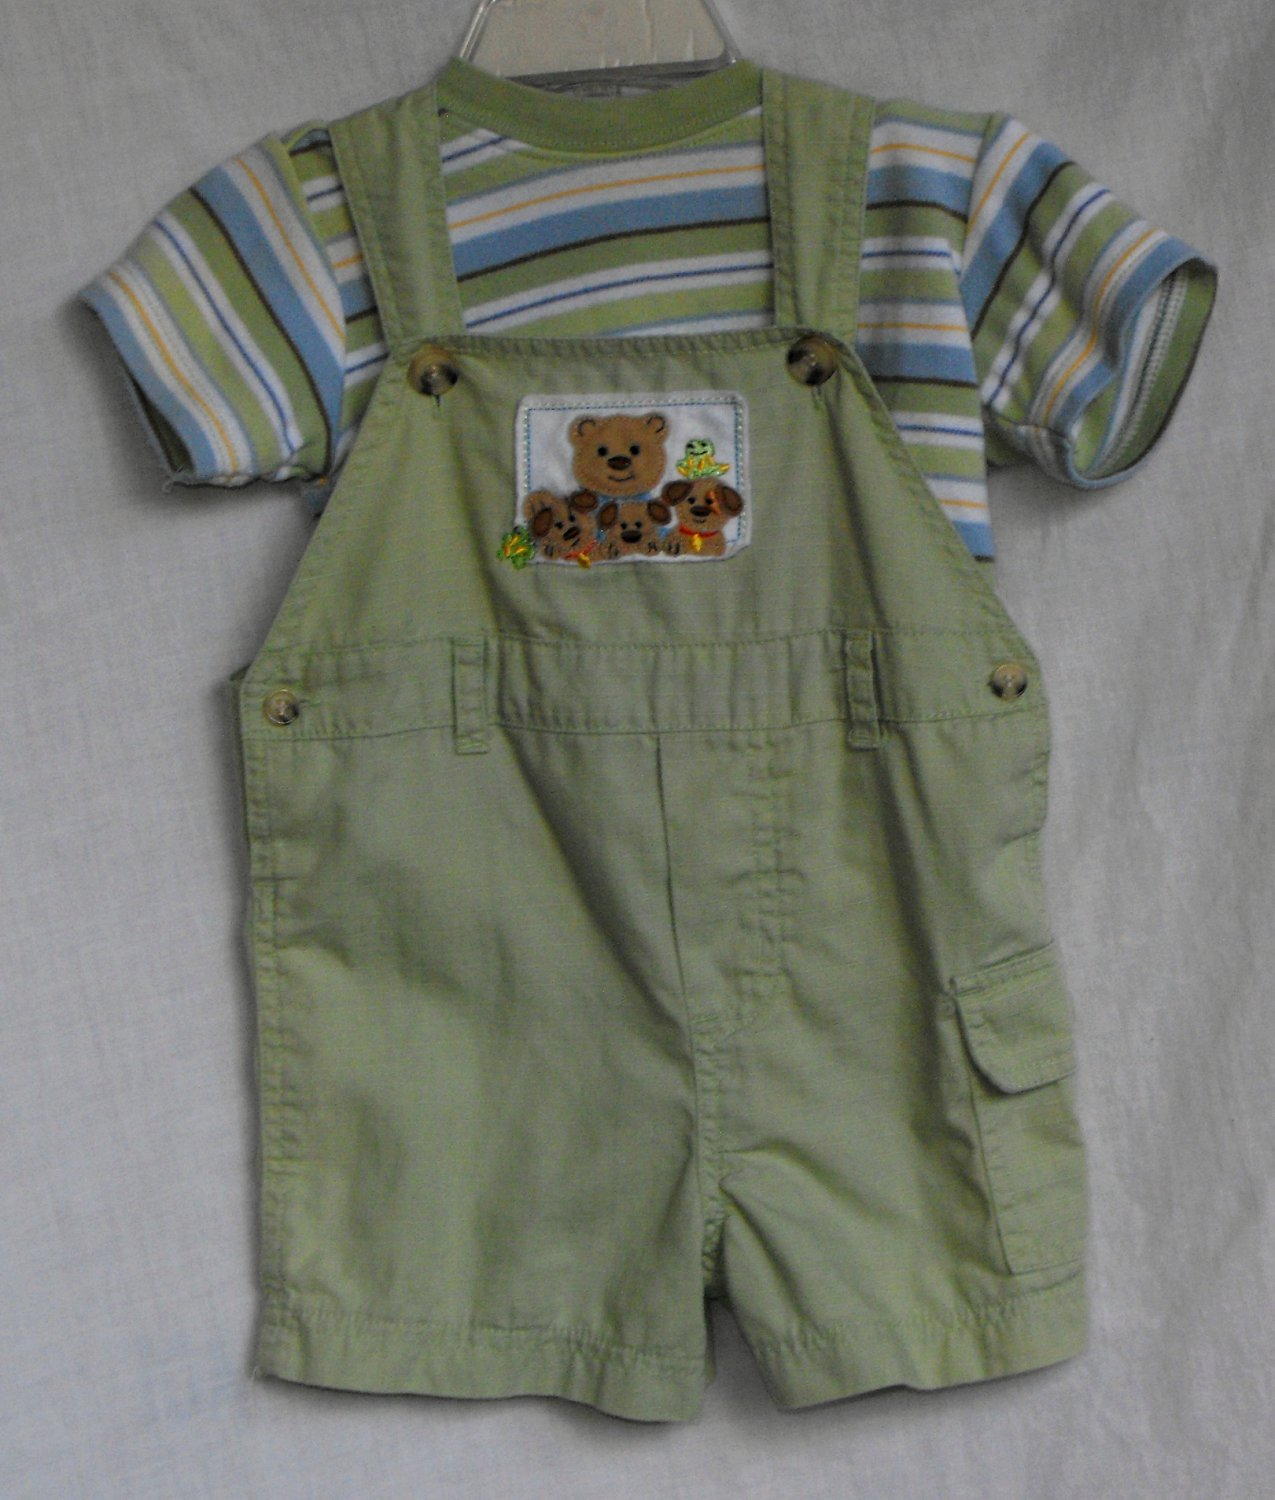 Pete's Partner by Good Lad  6-9 Month Bear 2 Piece Spring Summer Overall Outfit